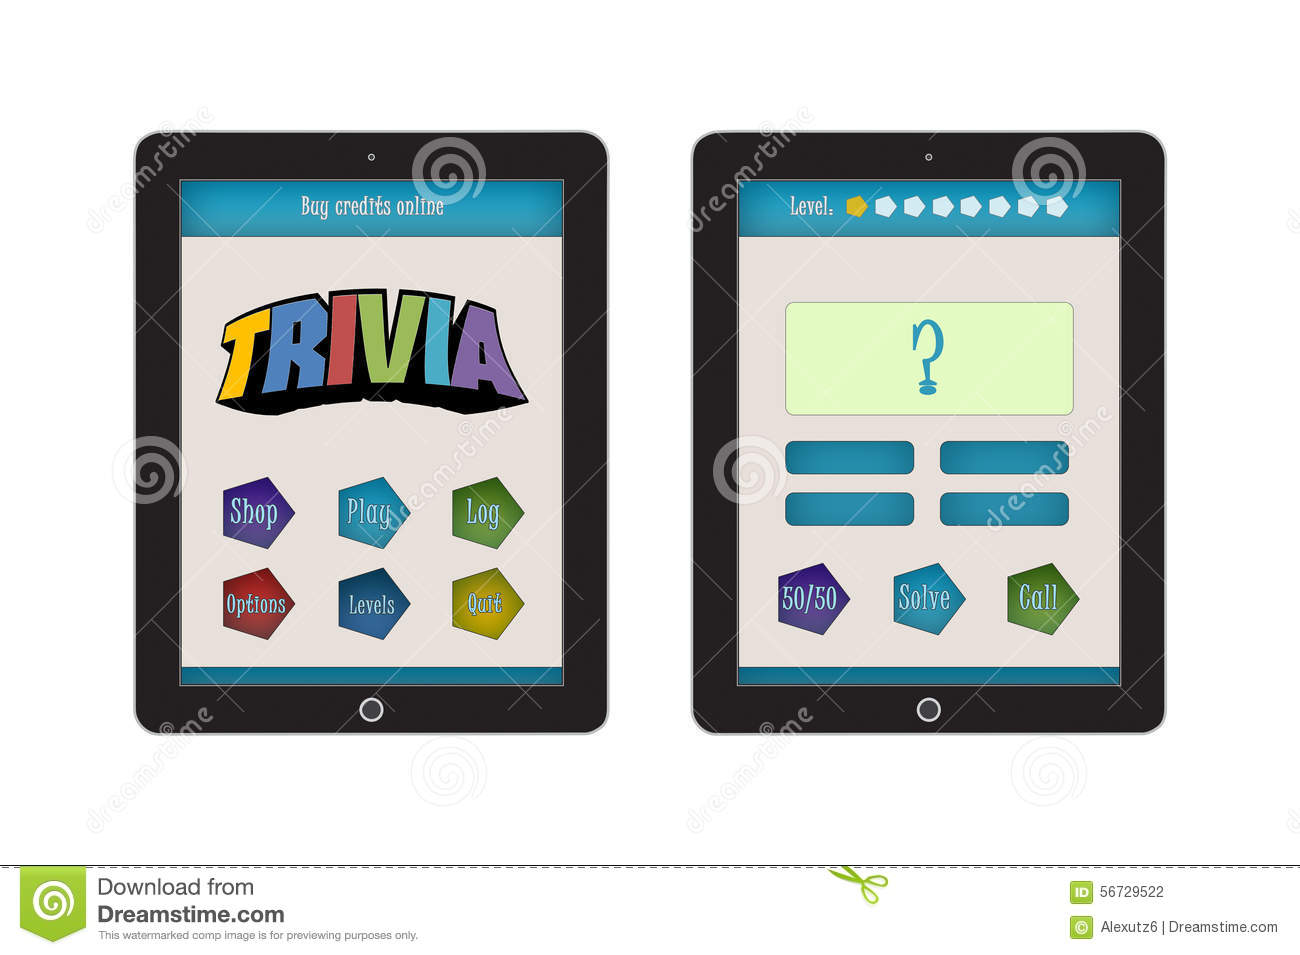 Trivia Game App Template For Mobile App And Website Design Stock Photo Image 56729522